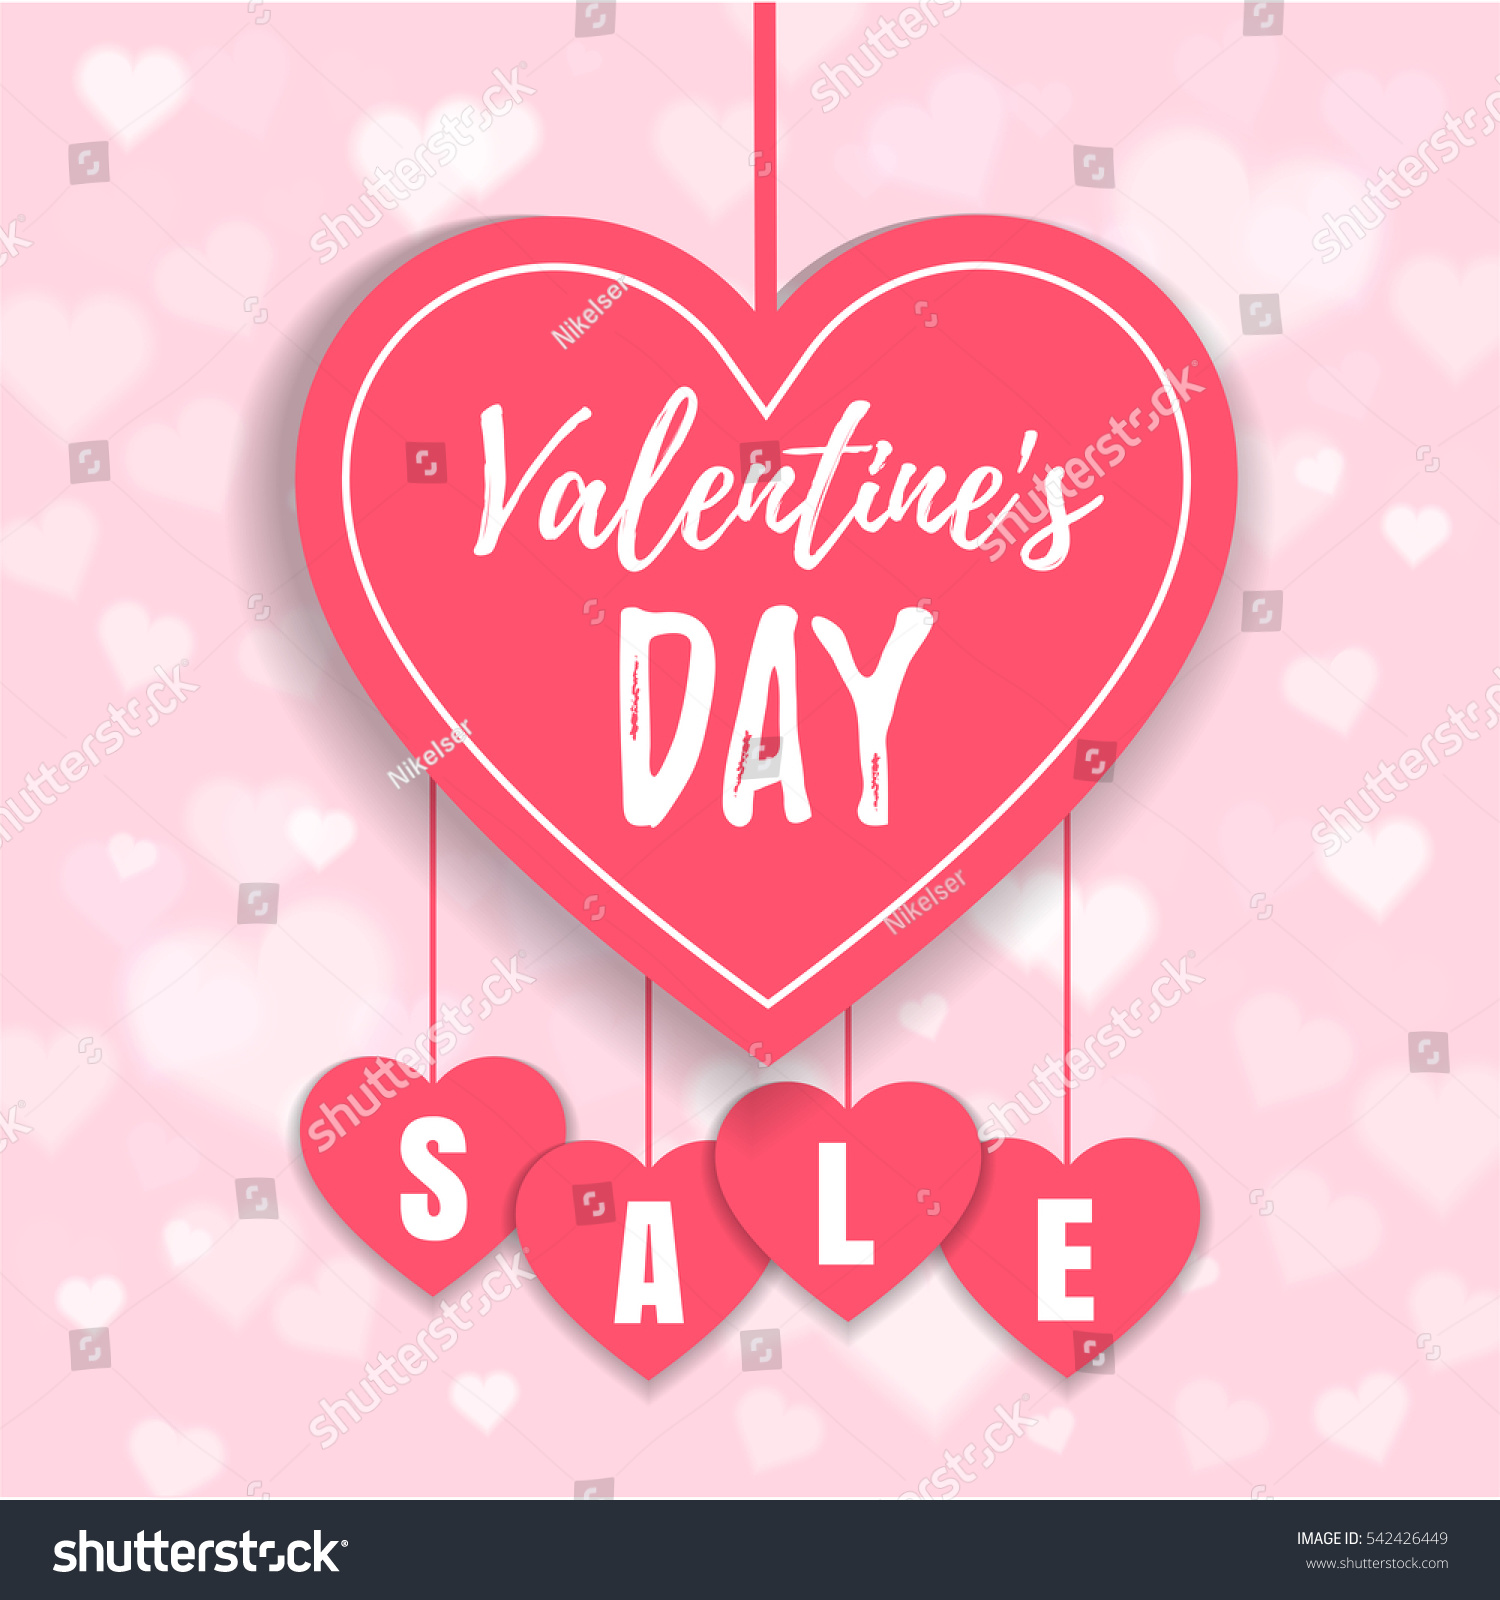 Valentineu0027s Day Sale Offer, Banner Template. Pink Heart With Lettering,  Isolated On Pink